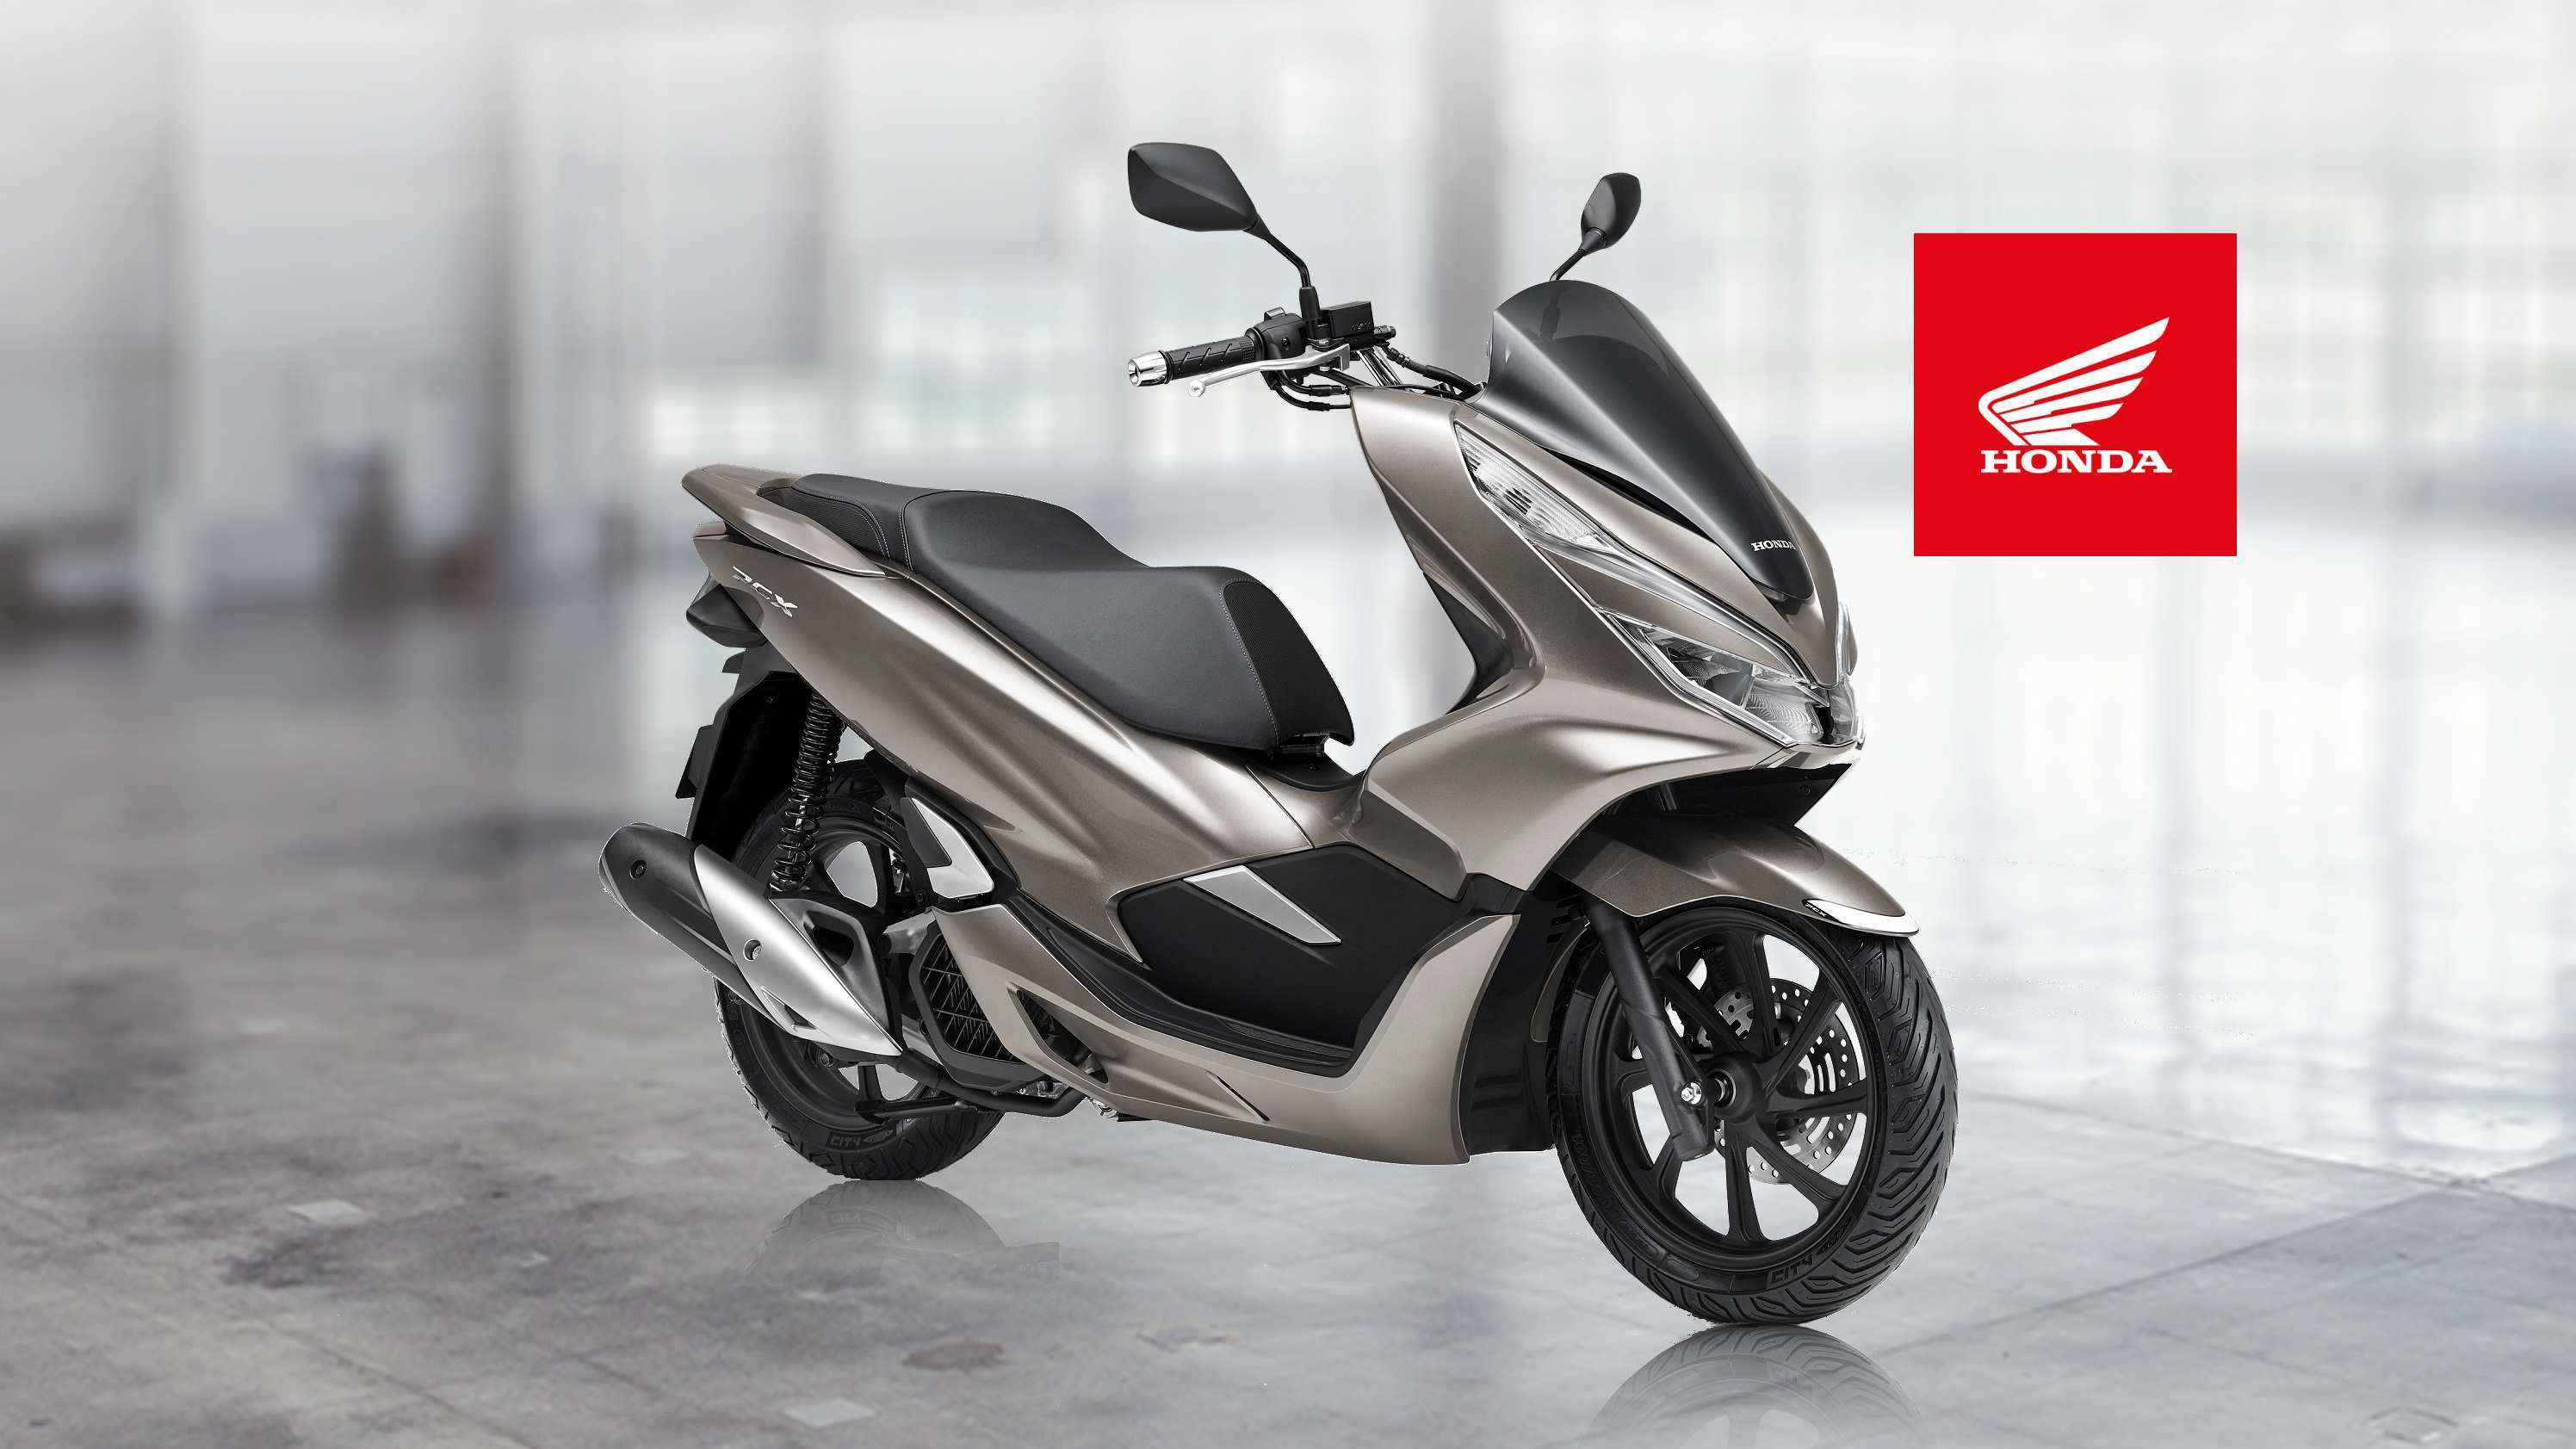 87 Great 2020 Honda Pcx150 New Concept for 2020 Honda Pcx150